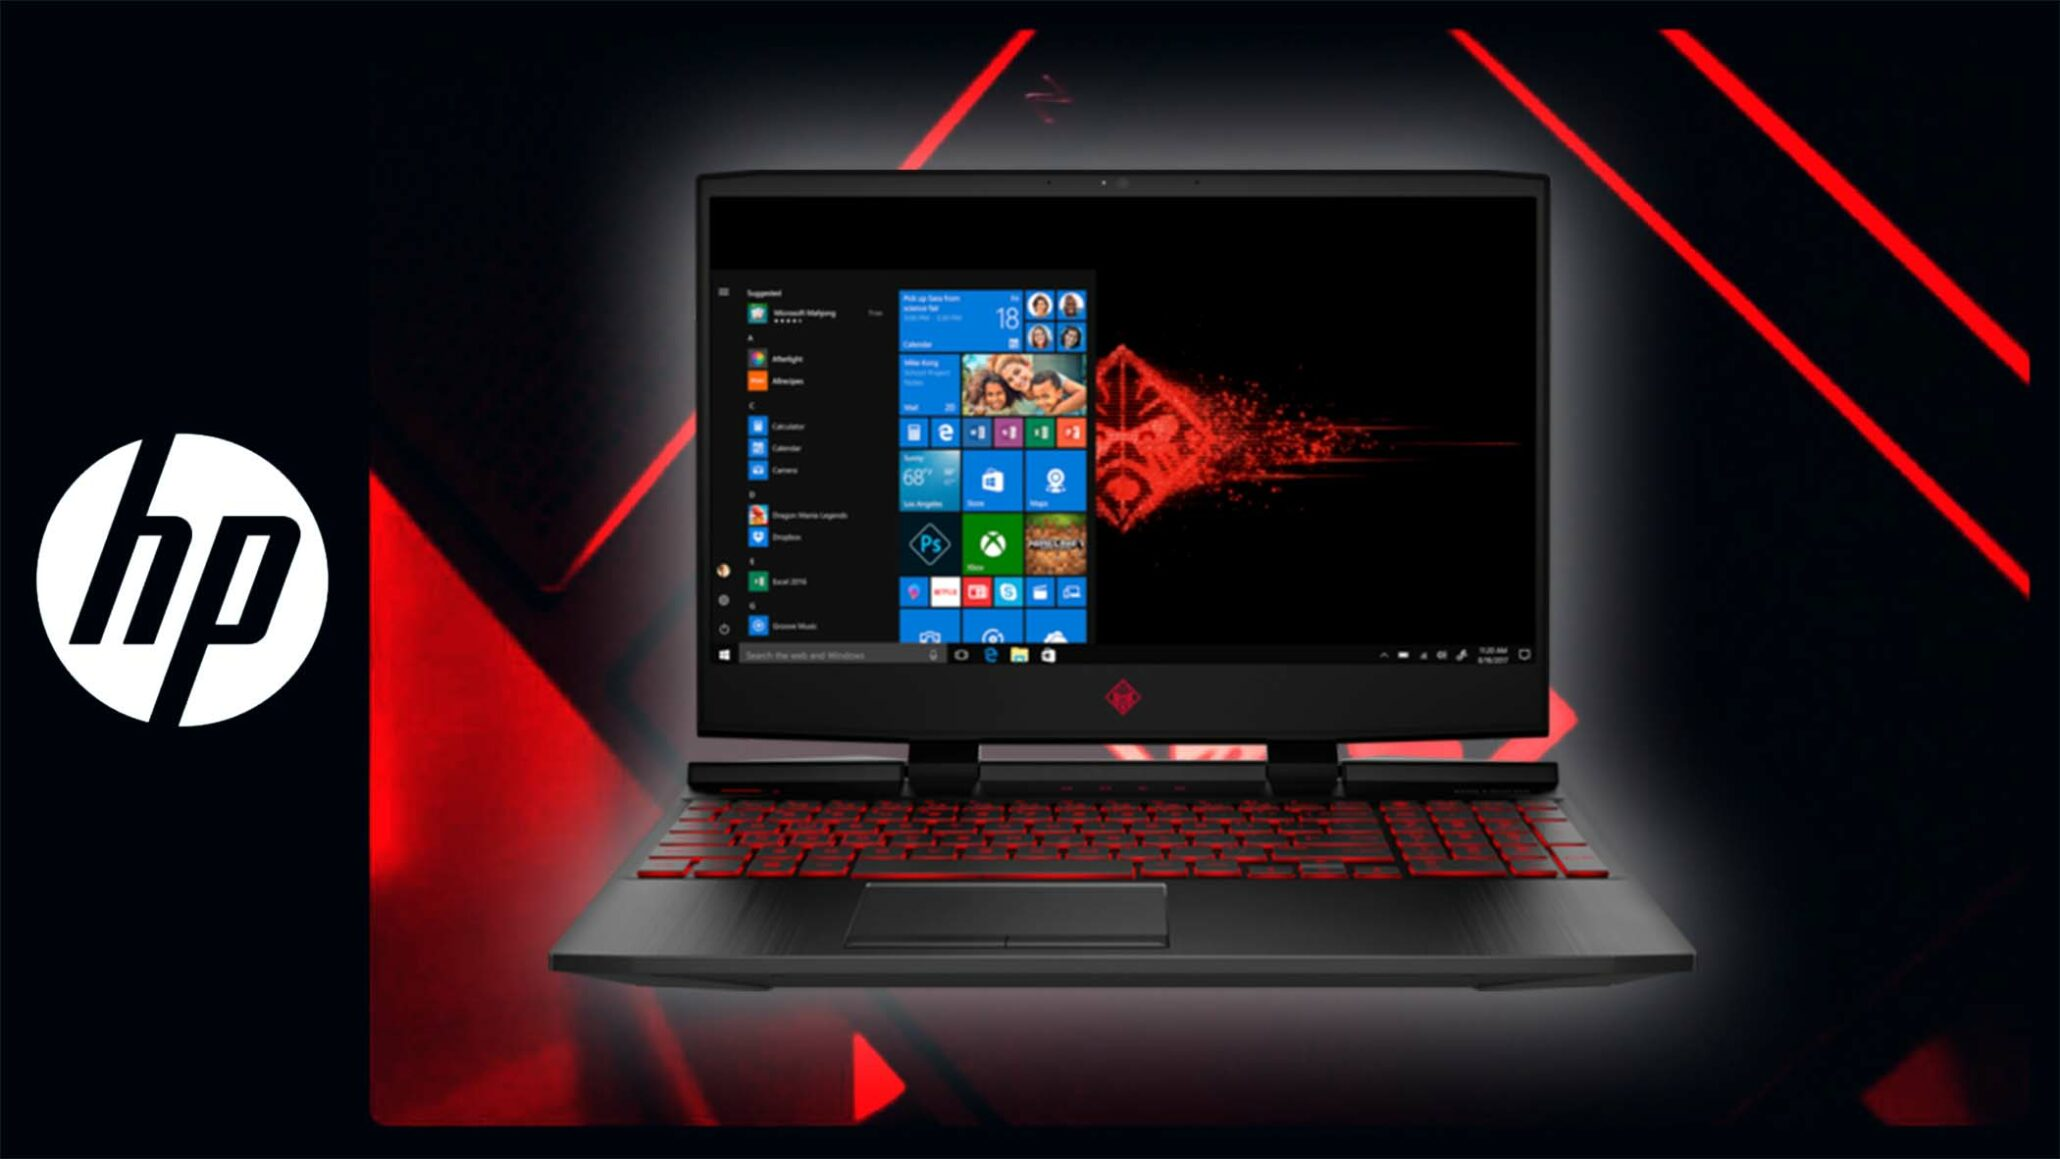 Super Deal Hp Omen Laptop With Intel Core I7 9750h Gtx 1660 Ti 6gb 16gb Ram For 1099 2 Hours Left